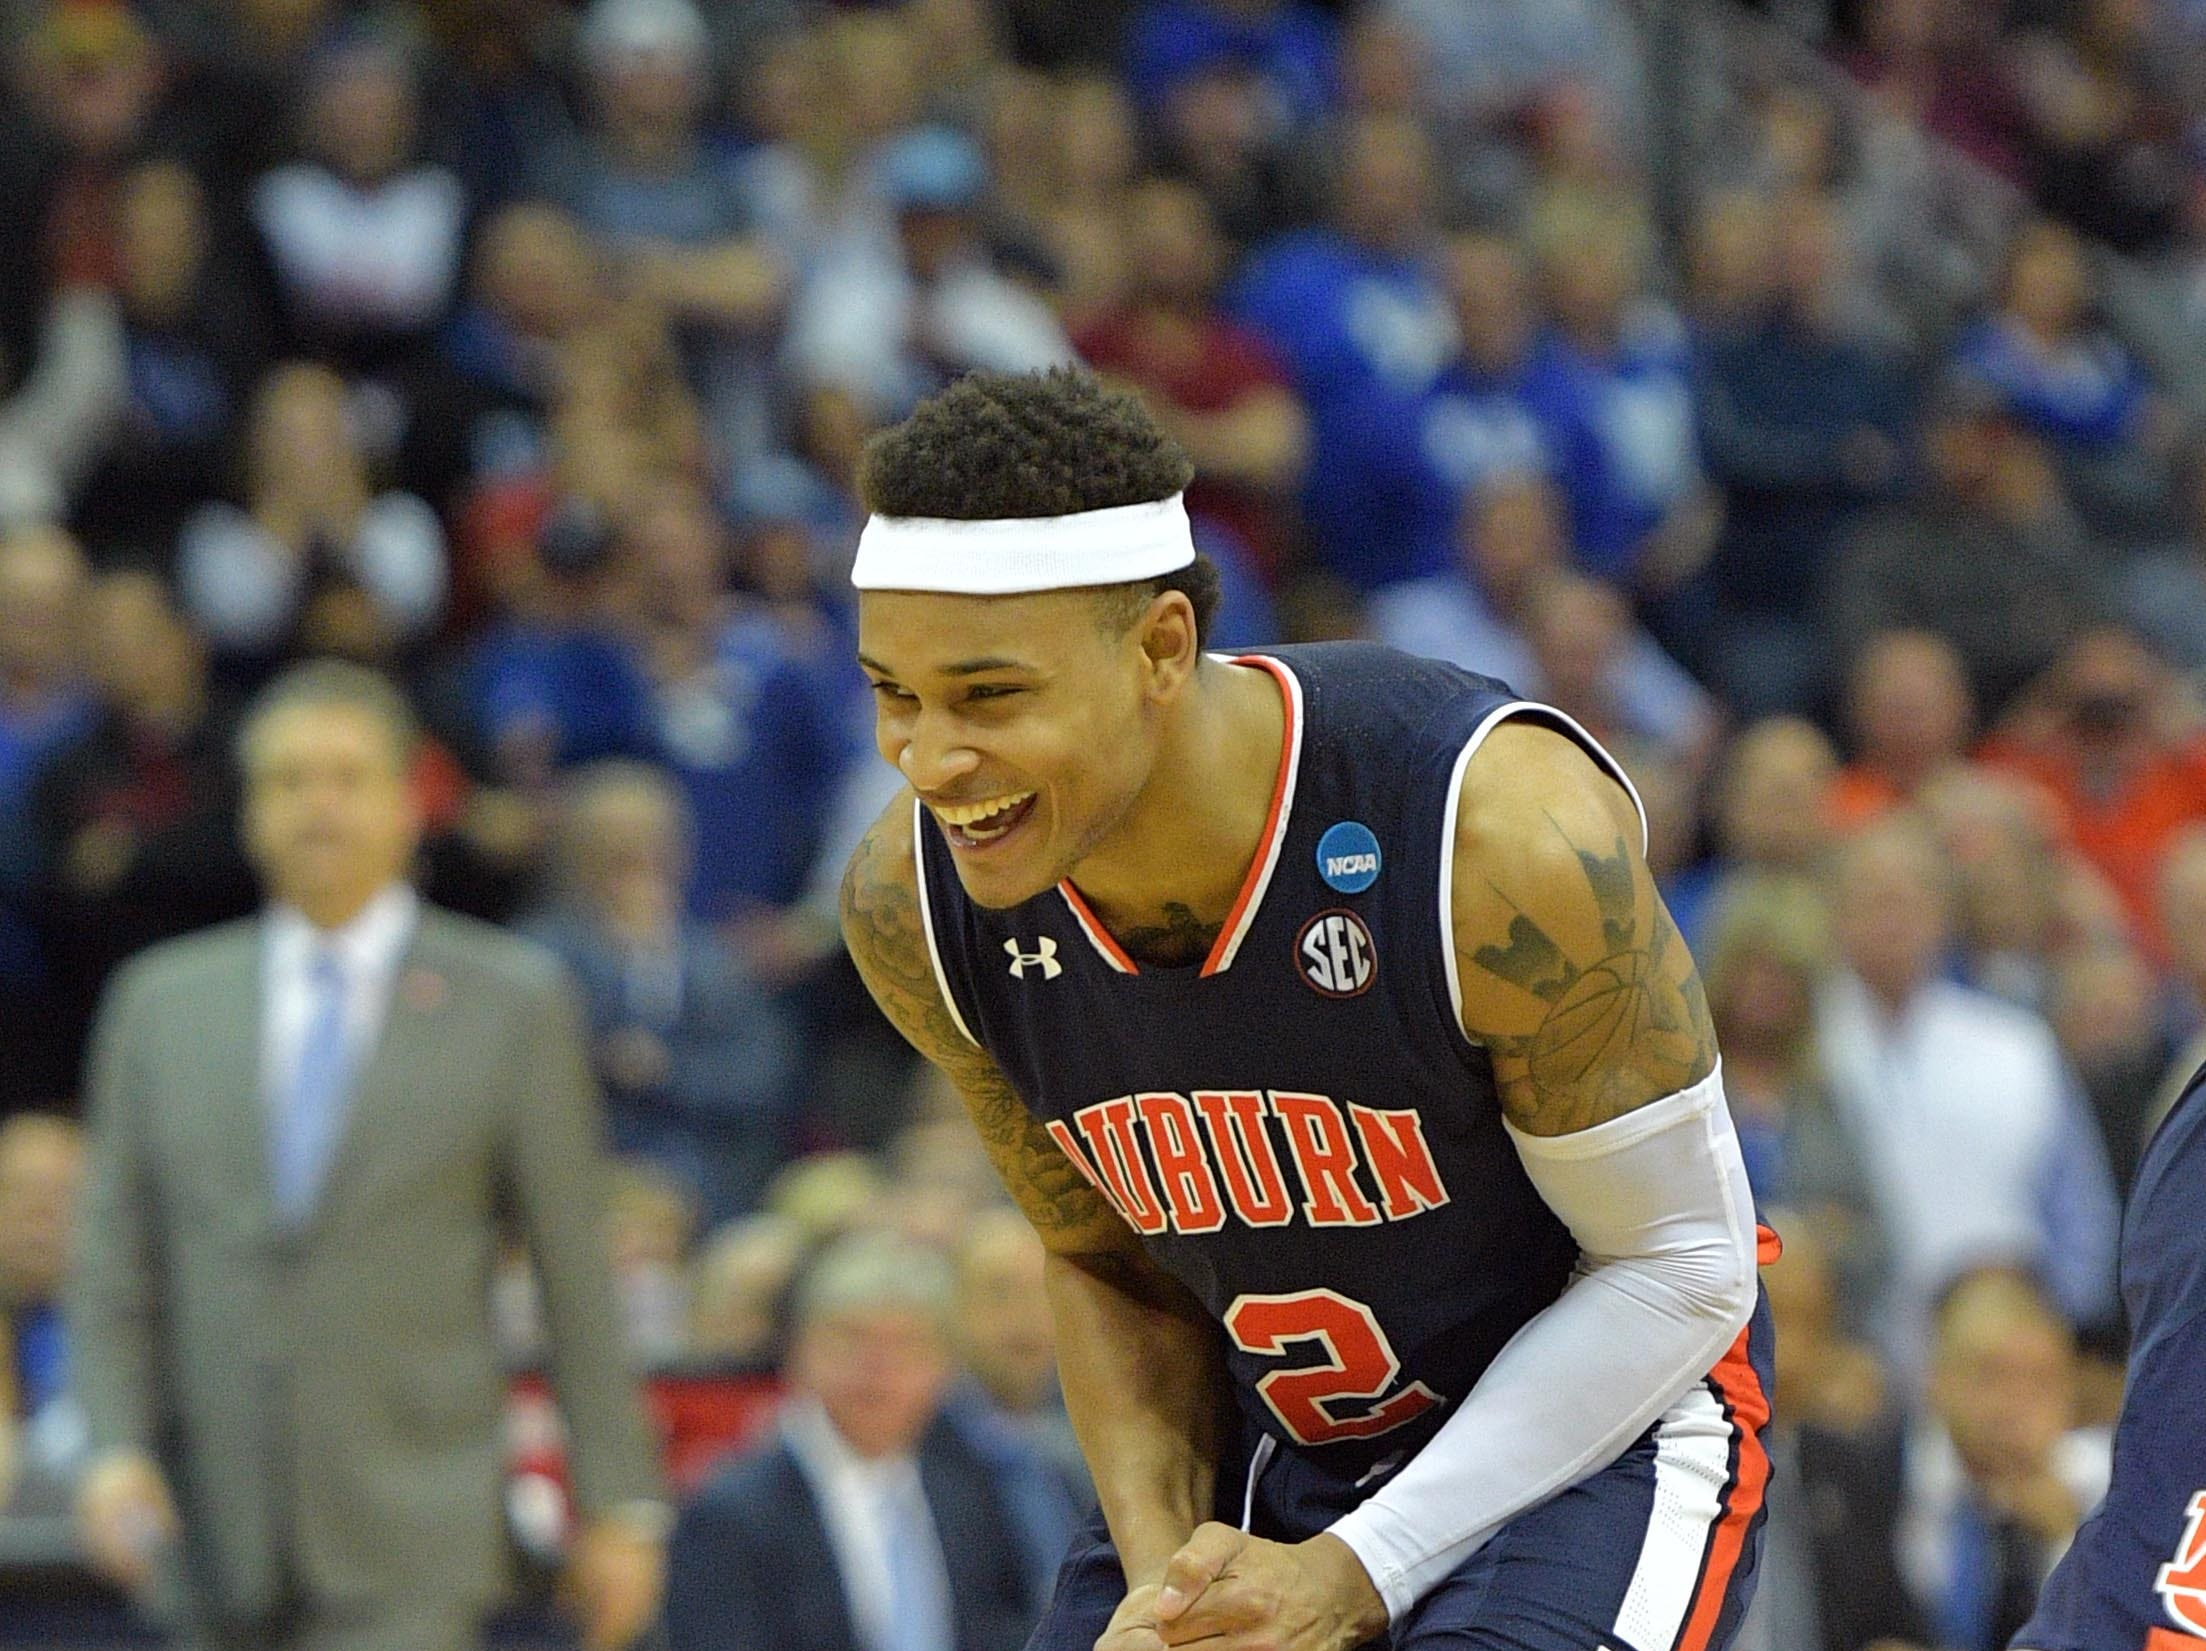 Mar 31, 2019; Kansas City, MO, United States; Auburn Tigers guard Bryce Brown (2) celebrates against the Kentucky Wildcats during overtime in the championship game of the midwest regional of the 2019 NCAA Tournament at Sprint Center. Mandatory Credit: Denny Medley-USA TODAY Sports